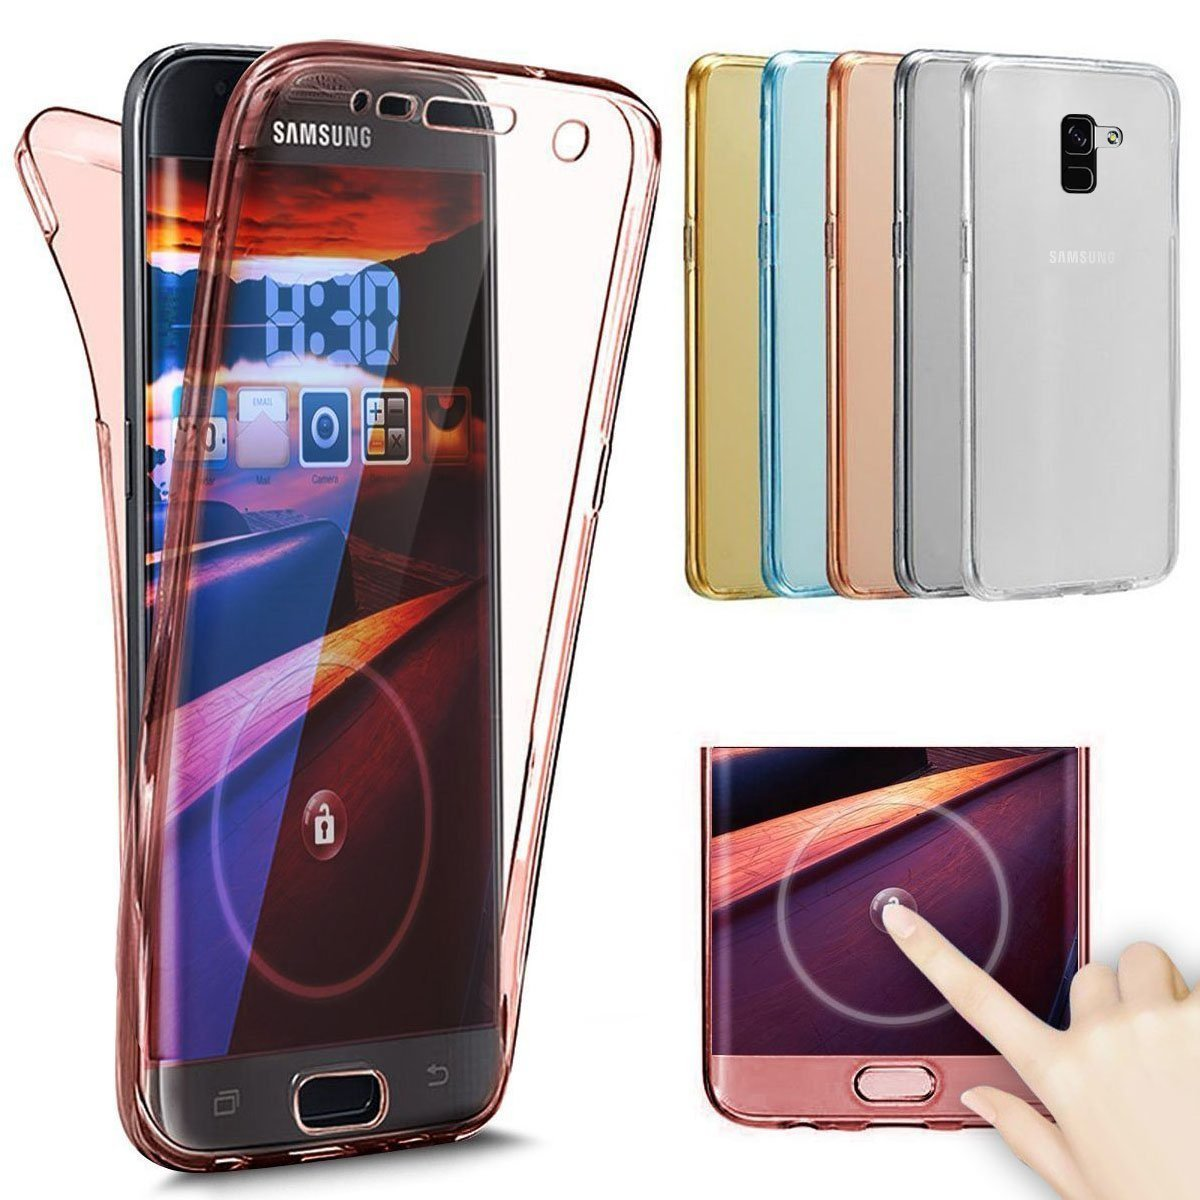 Coque Housse Etui pour Samsung Galaxy A8 2018 ,Ukayfe 360 Degrés de Protection Complète Coque TPU Silicone intégral Etui [Full-Body 360 Coverage Protective] Souple Double Faces Coque Transparent Soft Etui Housse Full Protection Integrale Avant Et Arrière